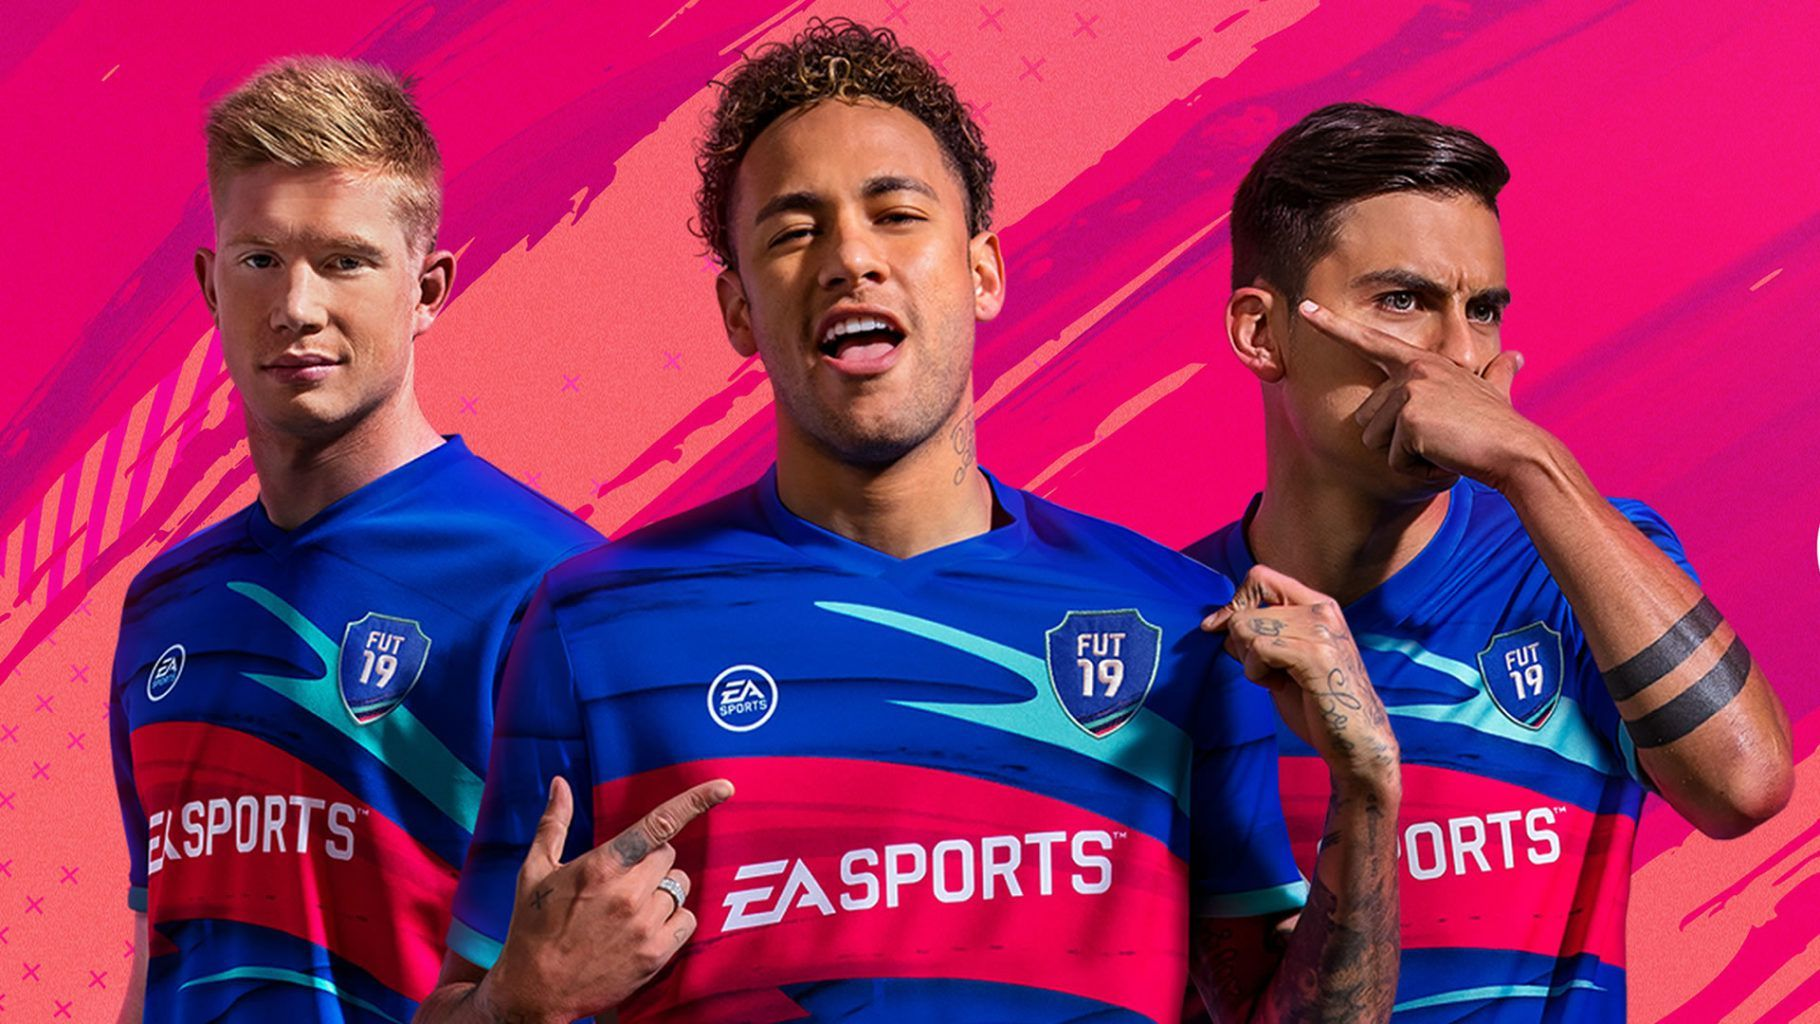 Major FIFA 19 Career Mode Glitch Gets Fixed in Newest Title Update